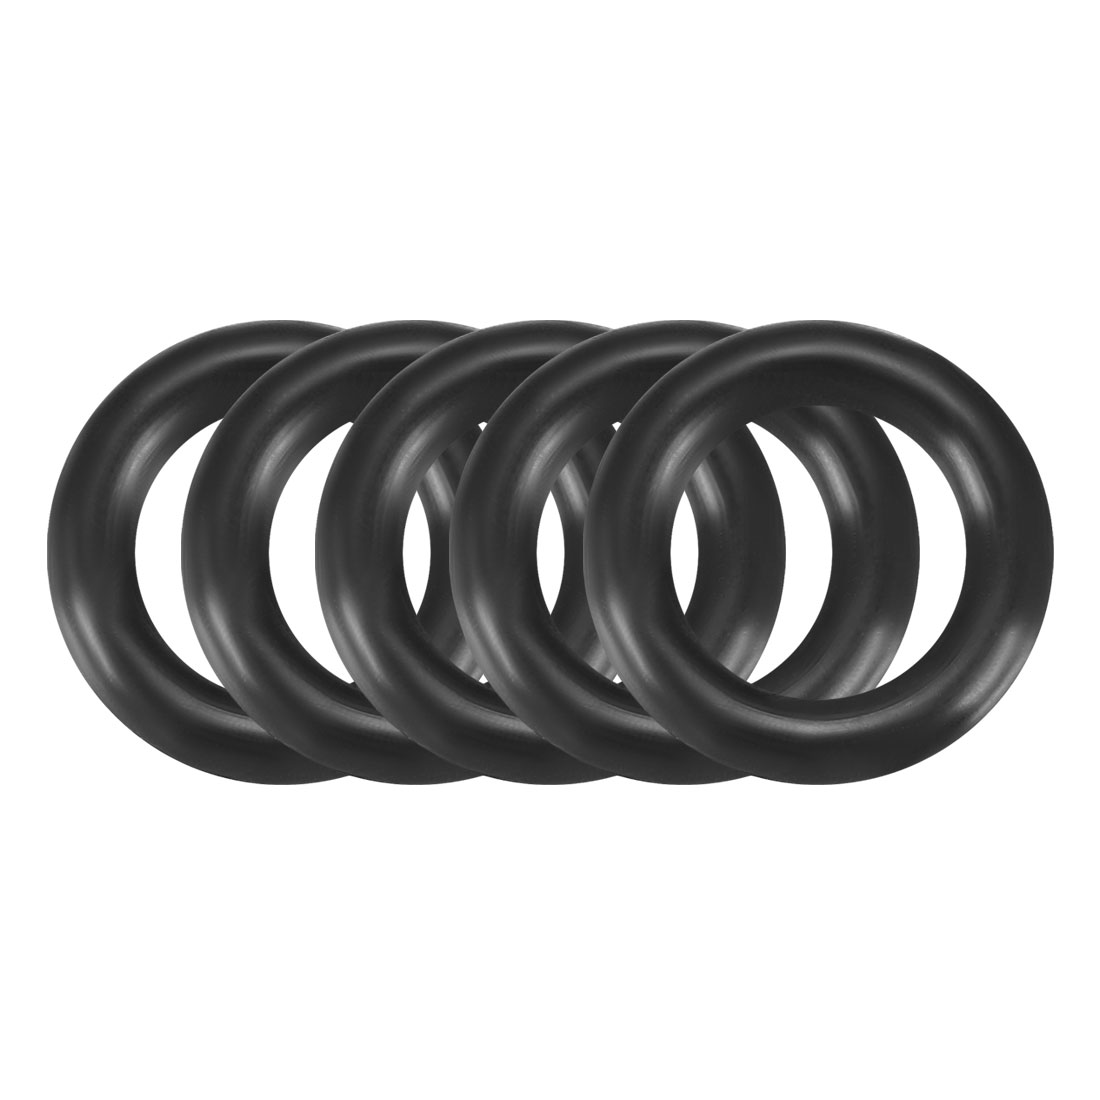 5 Pcs 17mm x 5mm Black Silicone O Rings Oil Seals Gaskets